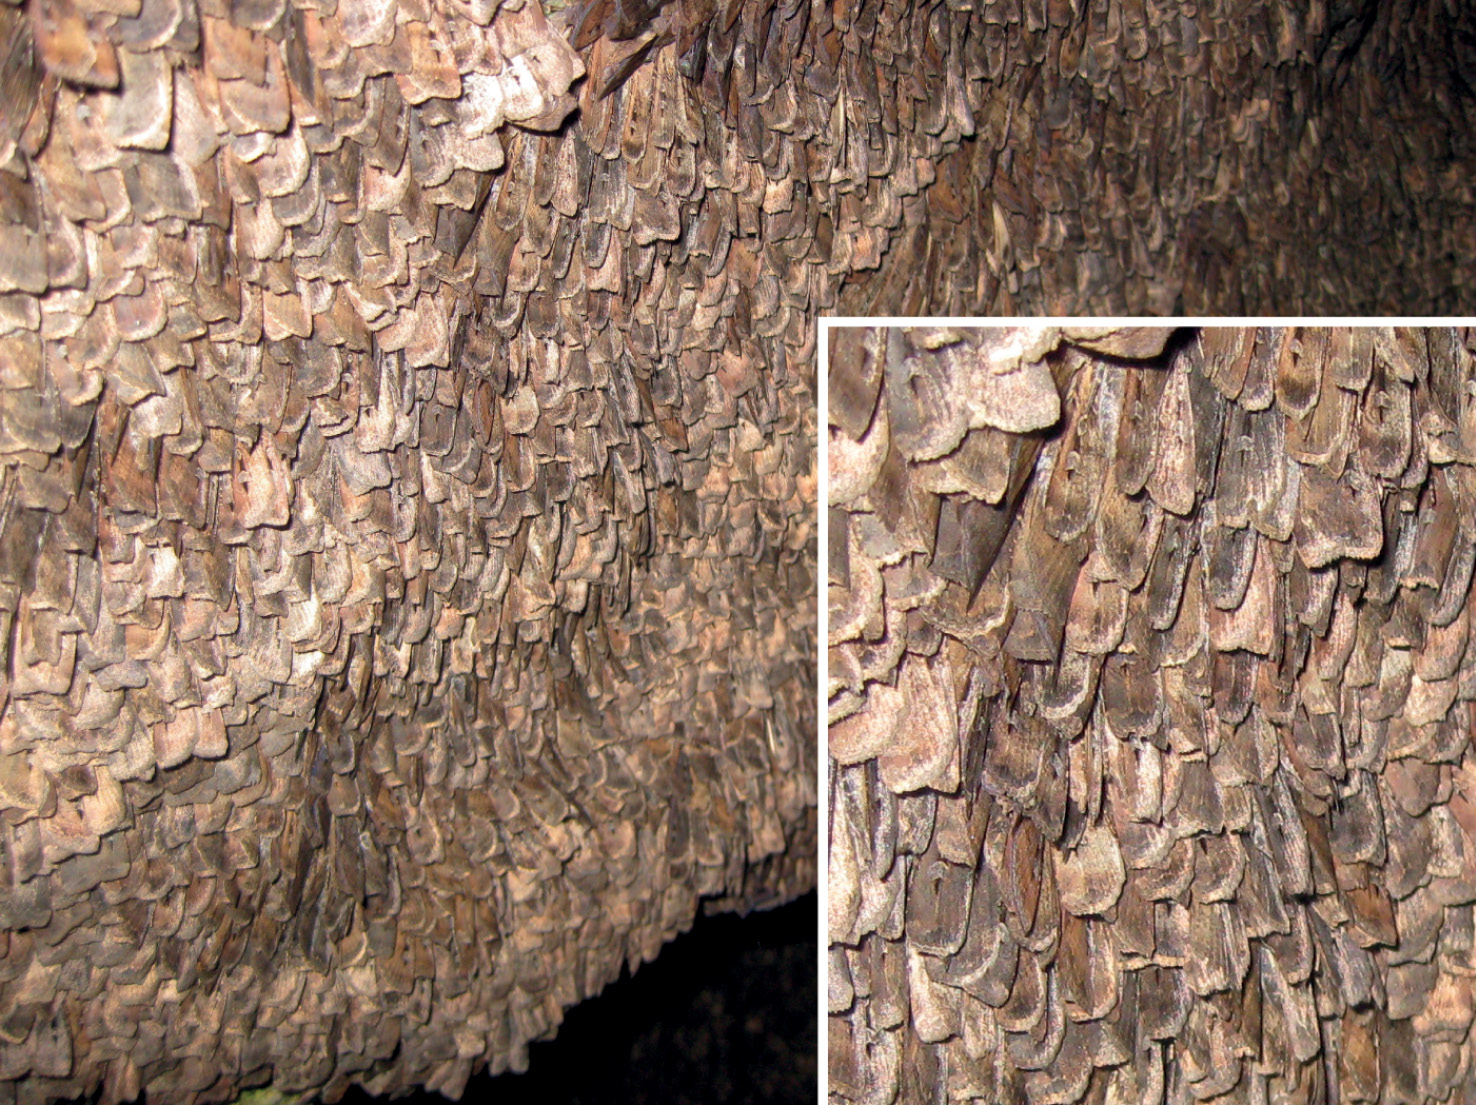 above A Bogong moth (right). As this photograph shows, at the right time of year thousands of them can be found per square metre on rock surfaces, offering an abundant source of food.